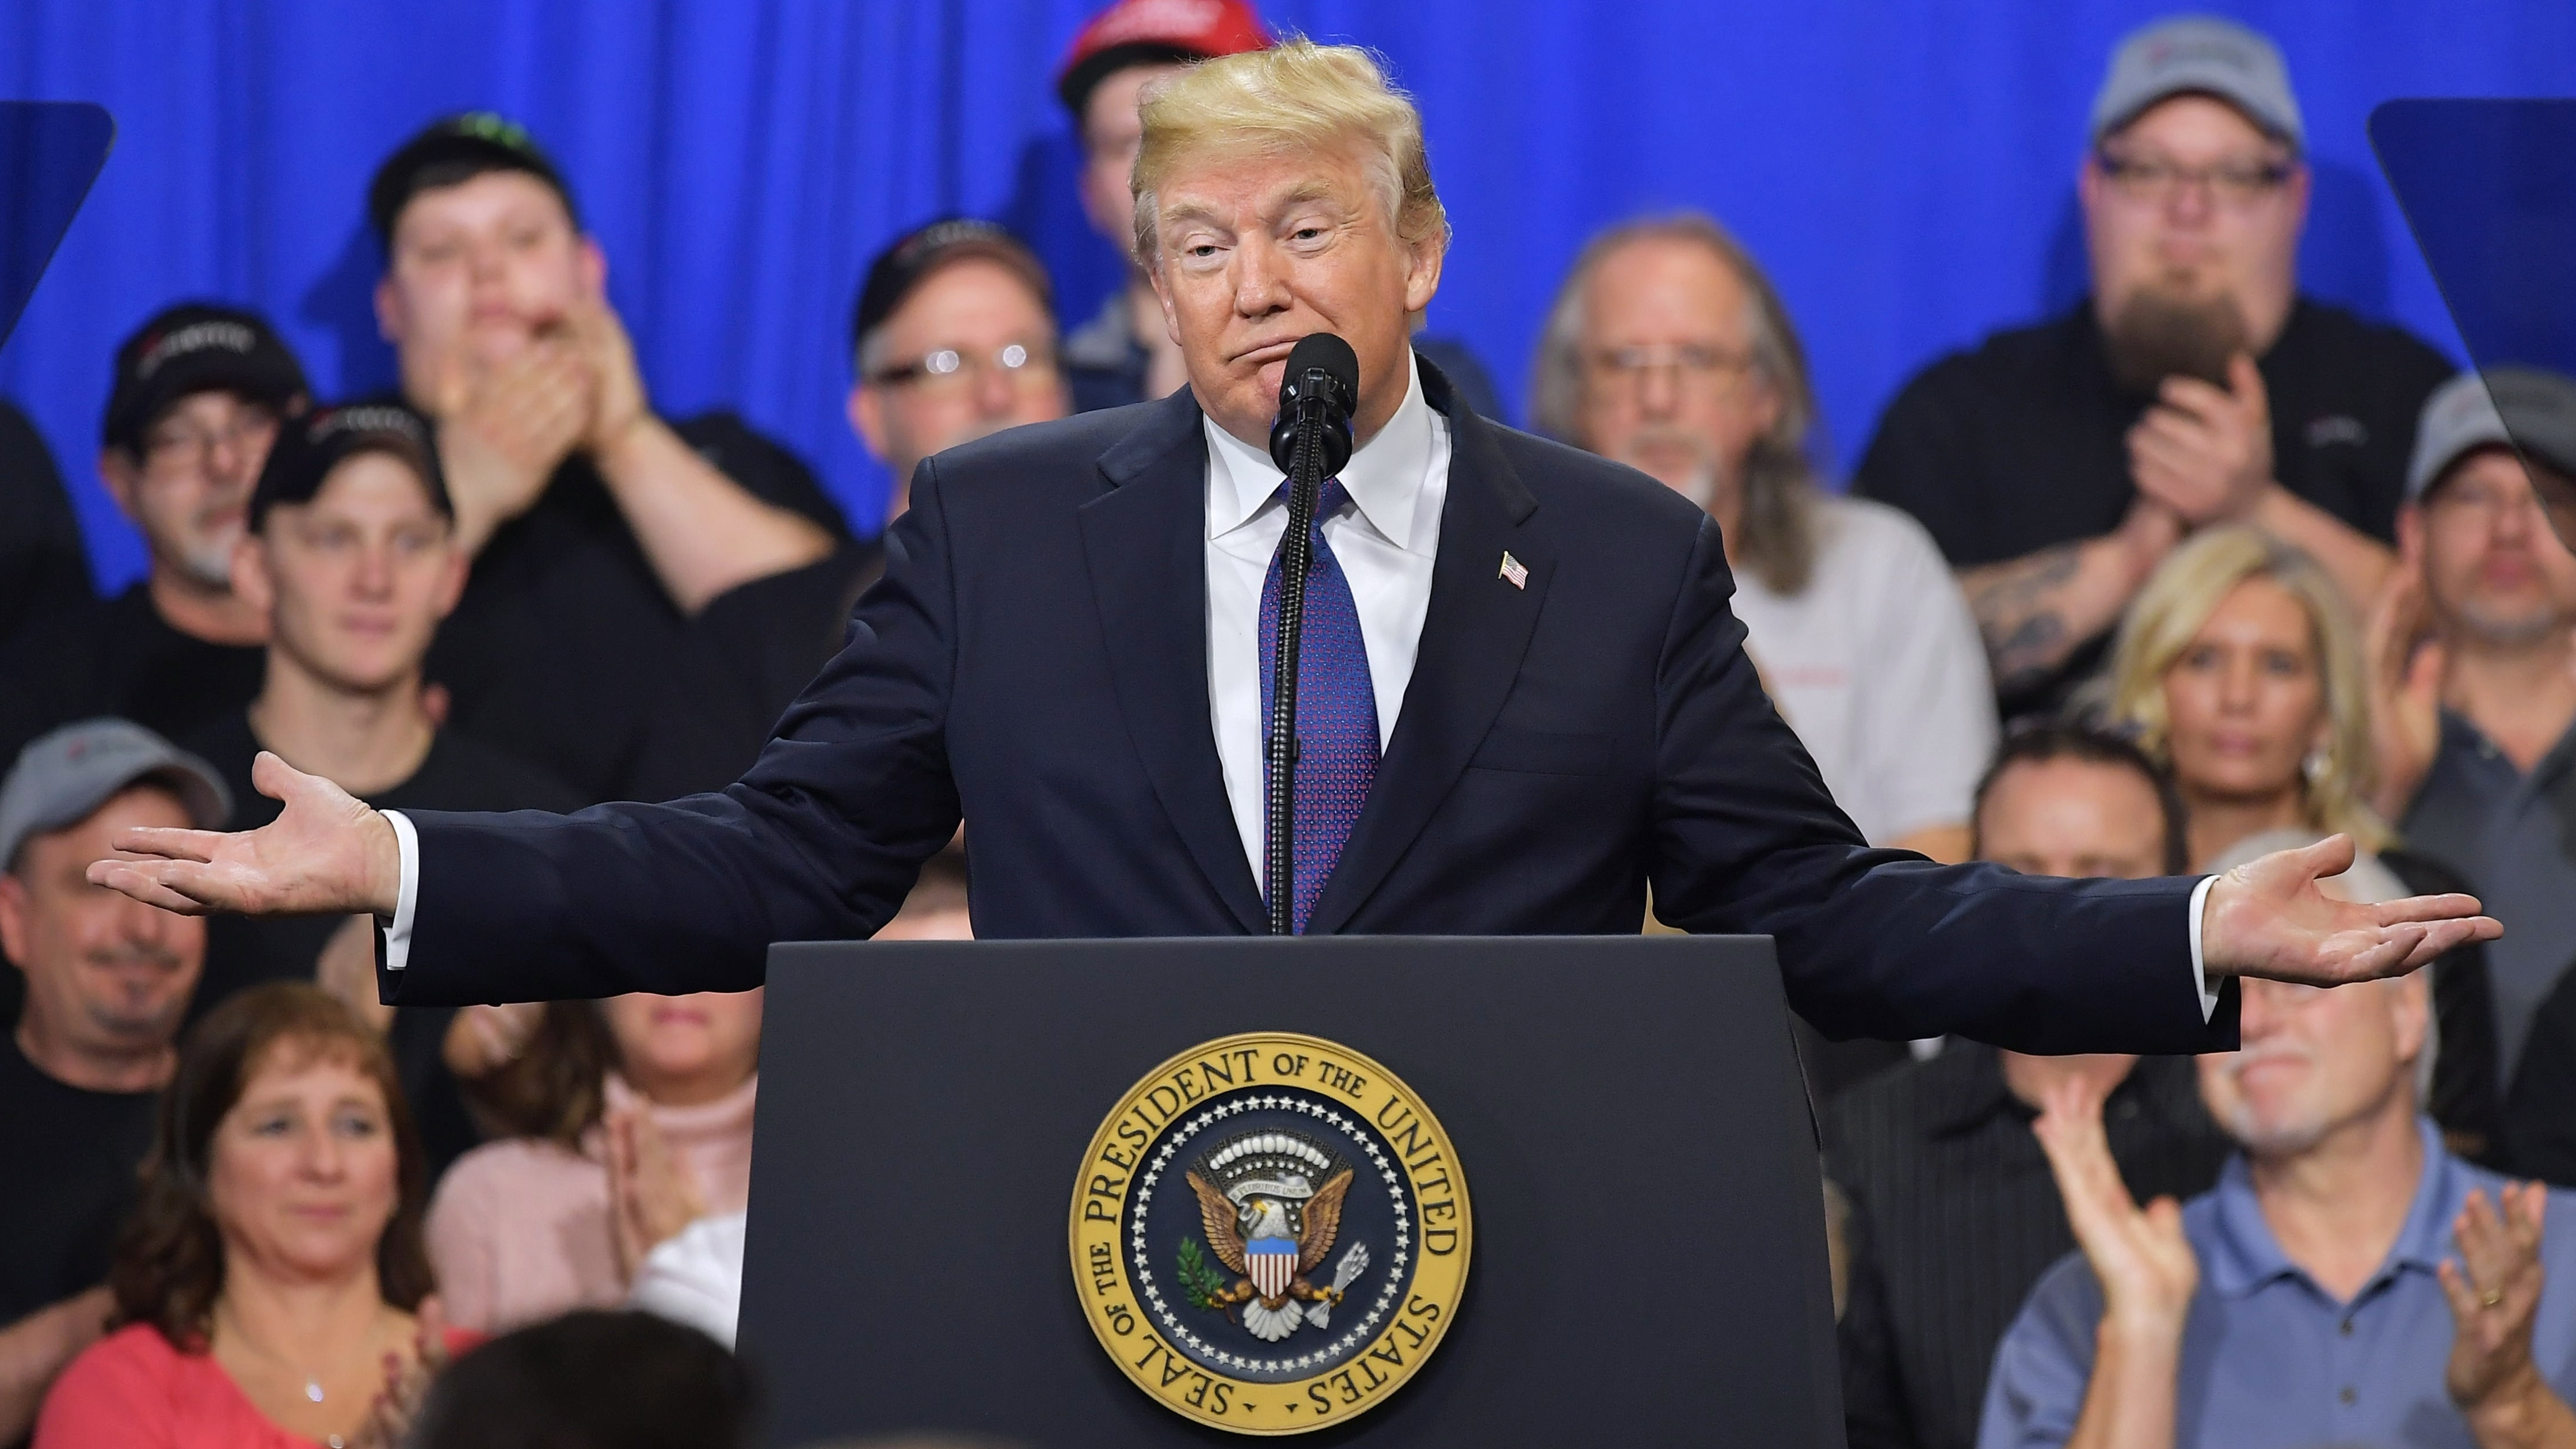 """When he spoke last month at hydraulic cylinder manufacturer Sheffer Corp. in Blue Ash, Ohio, President Trump told the crowd """"history is not on our side"""" in the 2018 midterms."""